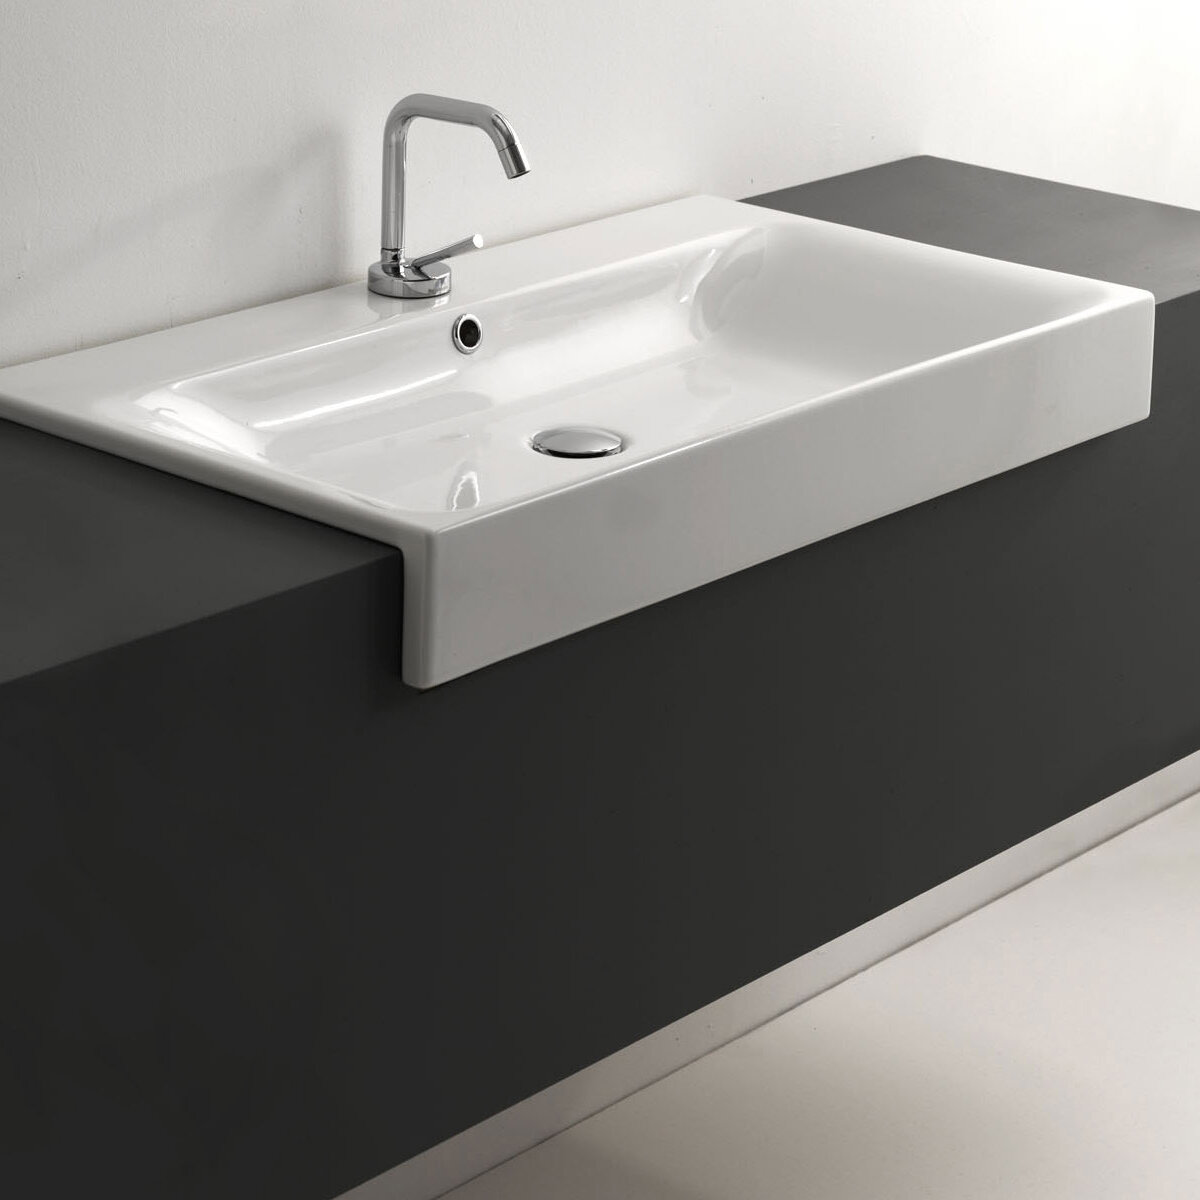 Ws Bath Collections Cento Ceramic Ceramic Rectangular Vessel Bathroom Sink With Faucet And Overflow Wayfair